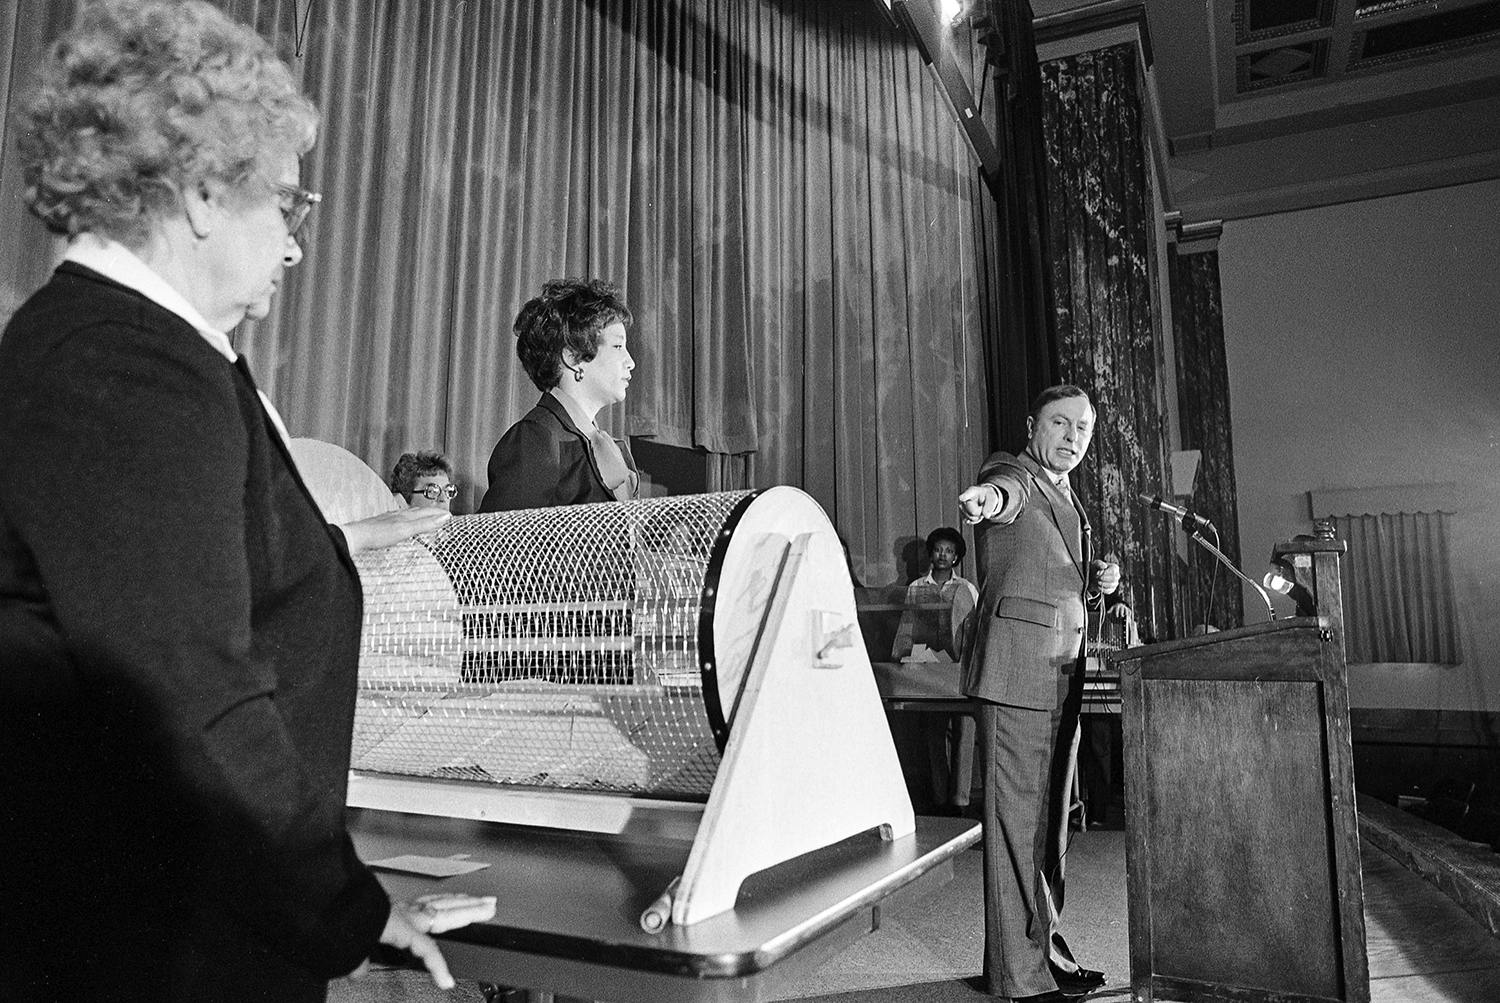 Illinois Secretary of State Alan Dixon draws names for new auto license vanity plates, Feb. 26, 1980. File/The State Journal-RegisterIllinois Secretary of State Alan Dixon draws winners for new state vanity plate designs, Feb. 26, 1980. File/Bill Hagen/The State Journal-RegisterPublished as Picturing the Past Feb. 17, 2019When the Illinois General Assembly approved a change in 1979 to expand the number of letters on a vanity plate from three to six, Secretary of State Alan Dixon�s office received 24,000 requests for the new plates. To prove that vane minds think alike, more than 14,000 of those were duplicate requests for the same combination of letters. To determine who won, Dixon and his staff held a drawing in the Howlett Building auditorium Feb. 26, 1980. Sixty eight motorists asked for �MIKE,� but only Michael LaSalle of Arlington Heights earned the right to his name alone on his license plate. The others had to settle for �MIKE 1,� and �MIKE 2,� all the way up to �MIKE 67.�Other popular plates included �DAVID,� �ROBERT,� �MARK,� �JOHN,� CAROL,� �BILL,� AND �IRISH.� The most coveted vanity plate among Illinoisans that year was not for someone, but rather, for something. More than 100 proud Corvette owners wanted �VETTE,� which was awarded to Suburban Welding and Manufacturing Inc. of Franklin Park. File/Bill Hagen/The State Journal-Register